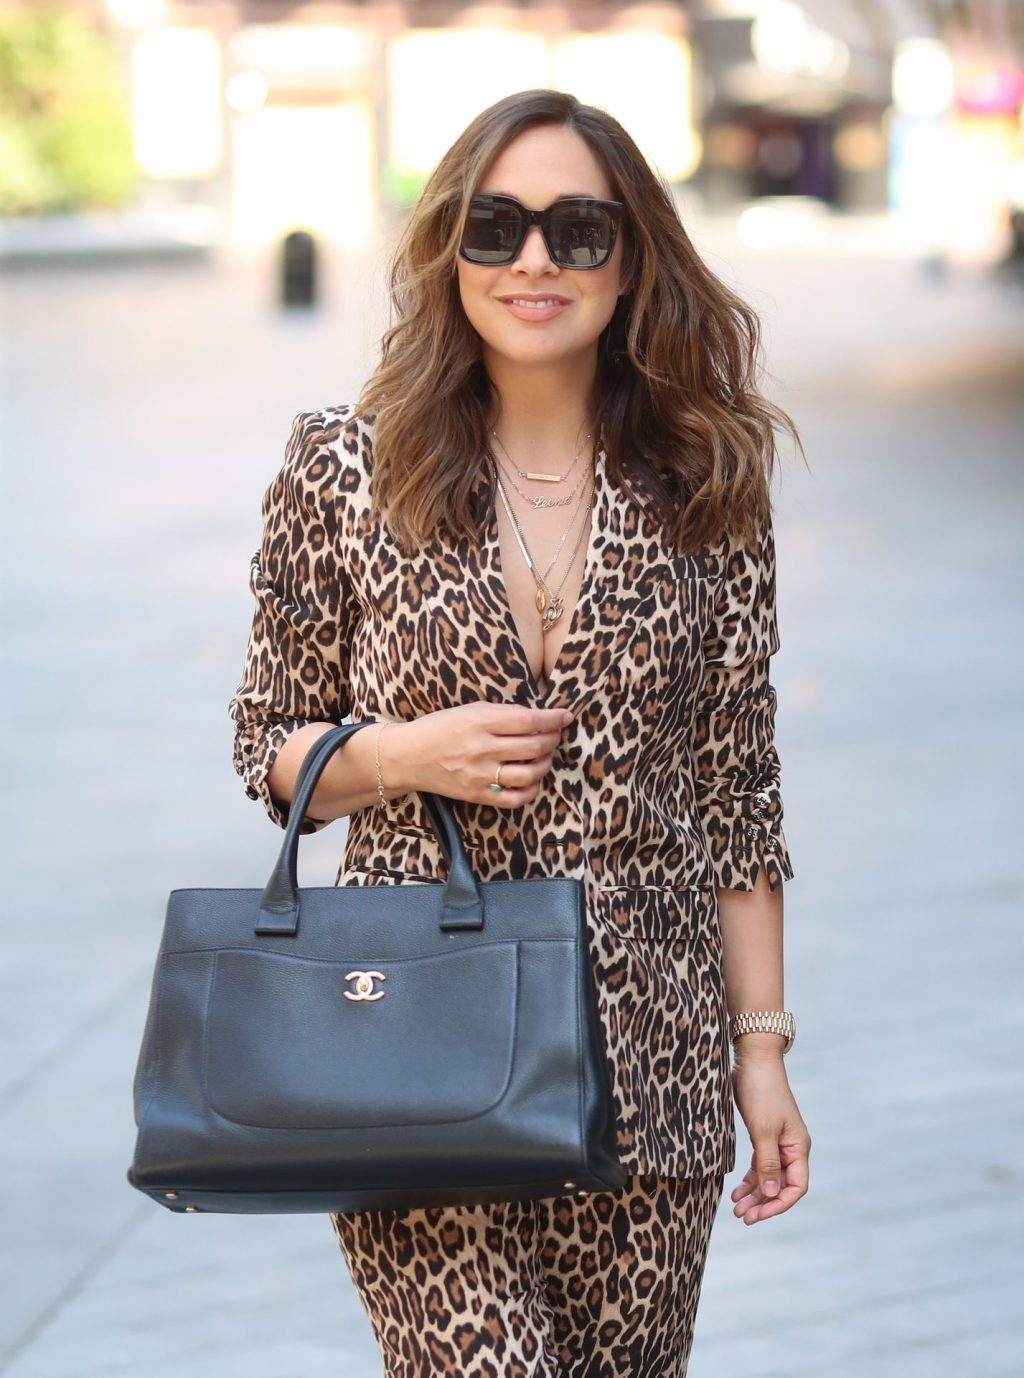 Sexy Singer Myleene Klass Is Pictured Arriving at the Global Studios (16 Photos)